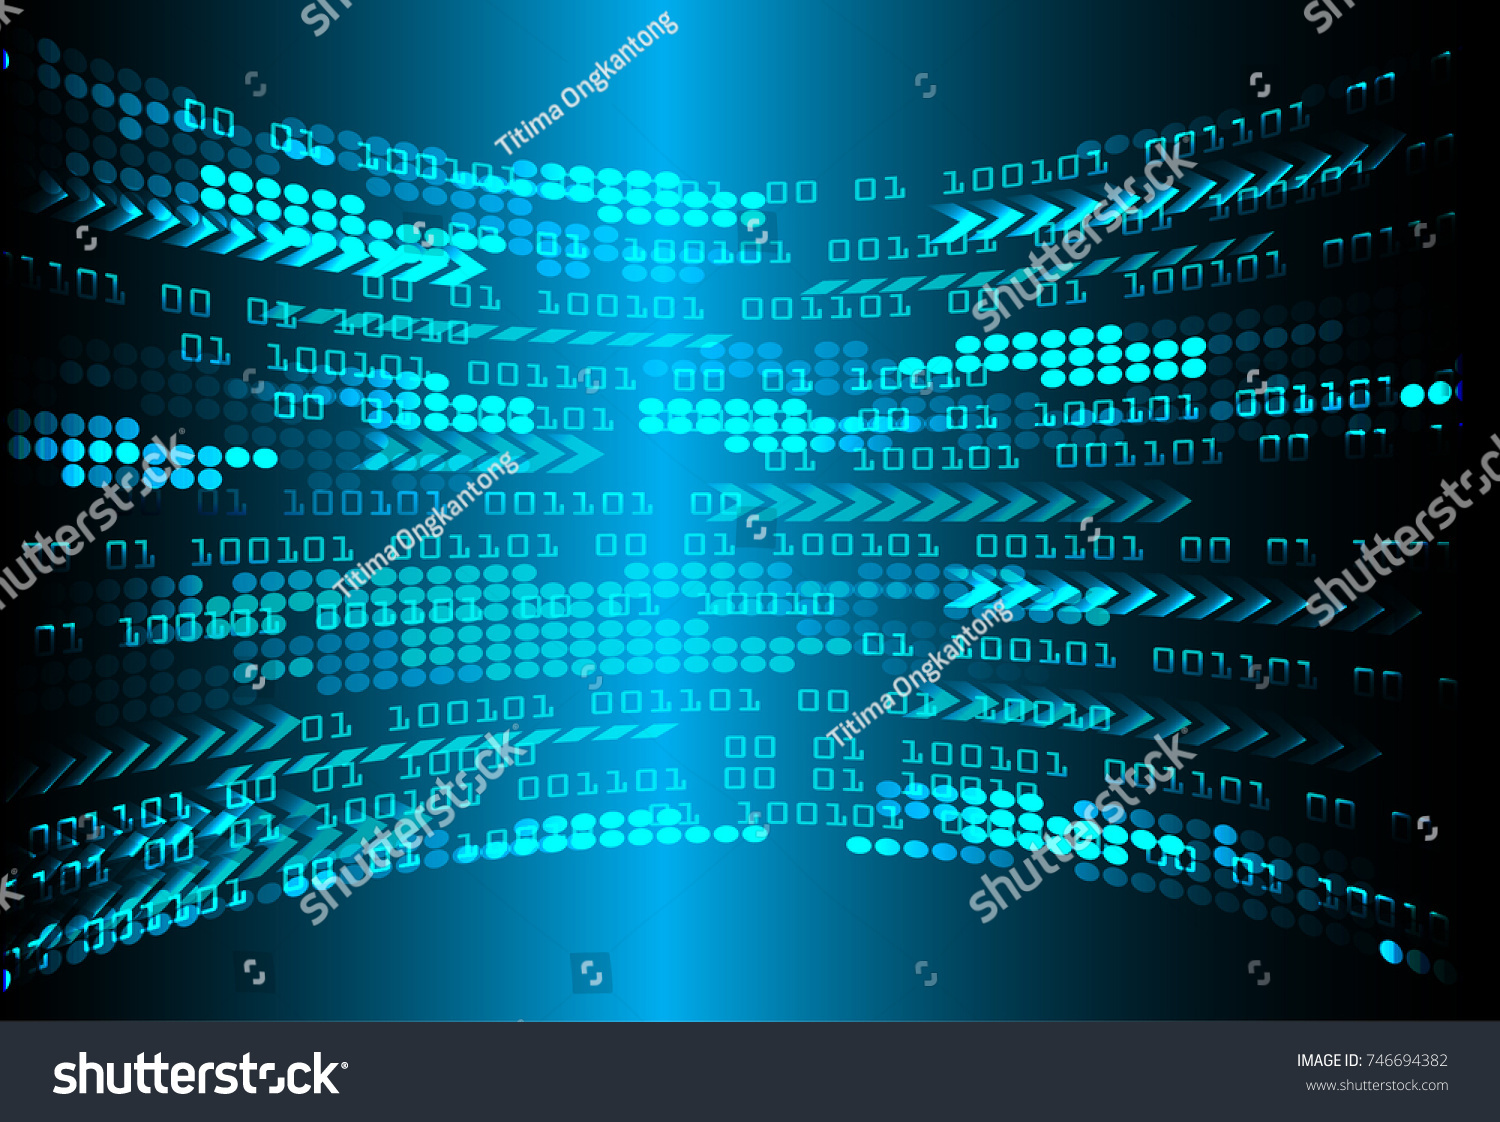 Binary Circuit Board Future Technology Blue Cyber Security Concept Abstact Background With And Code Stock Images Id 746694382